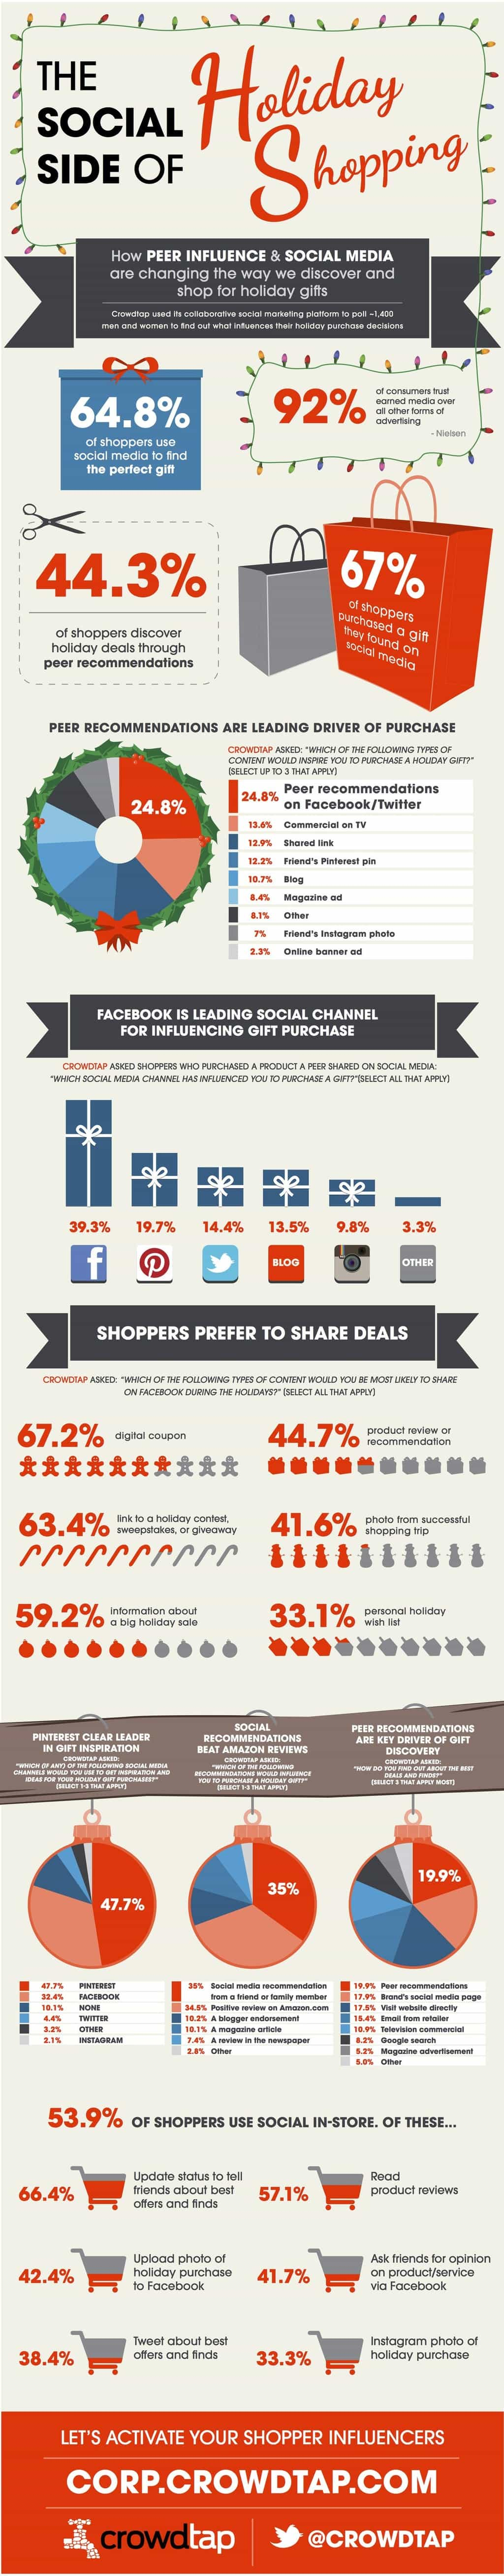 Holiday Marketing Tips – shoppers tap into social media when searching for the perfect gift